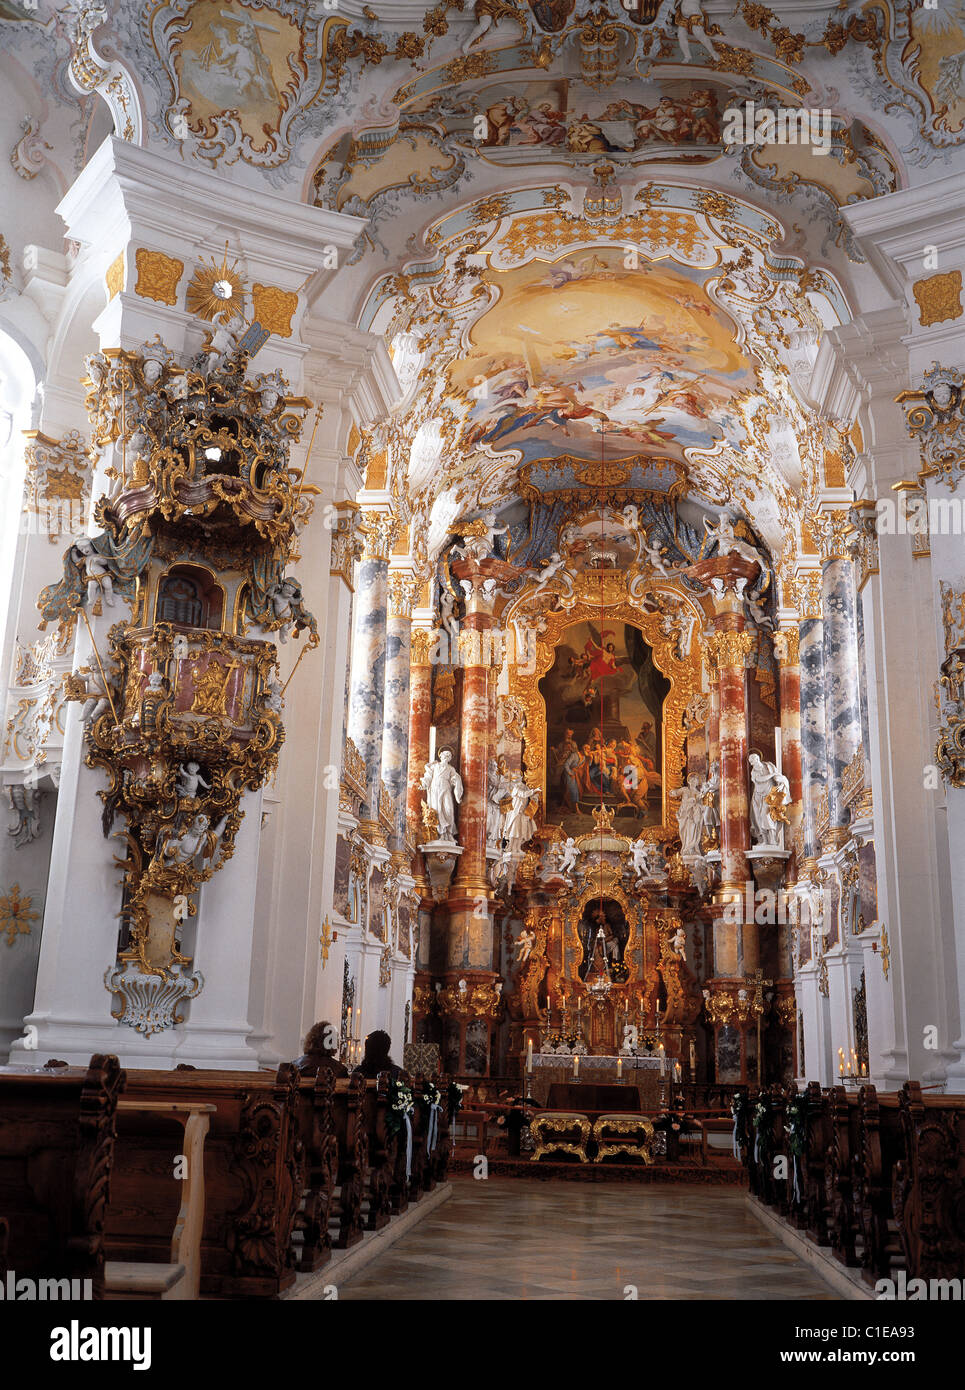 Germany, Region of Bavaria, Wiese baroque church, nave - Stock Image